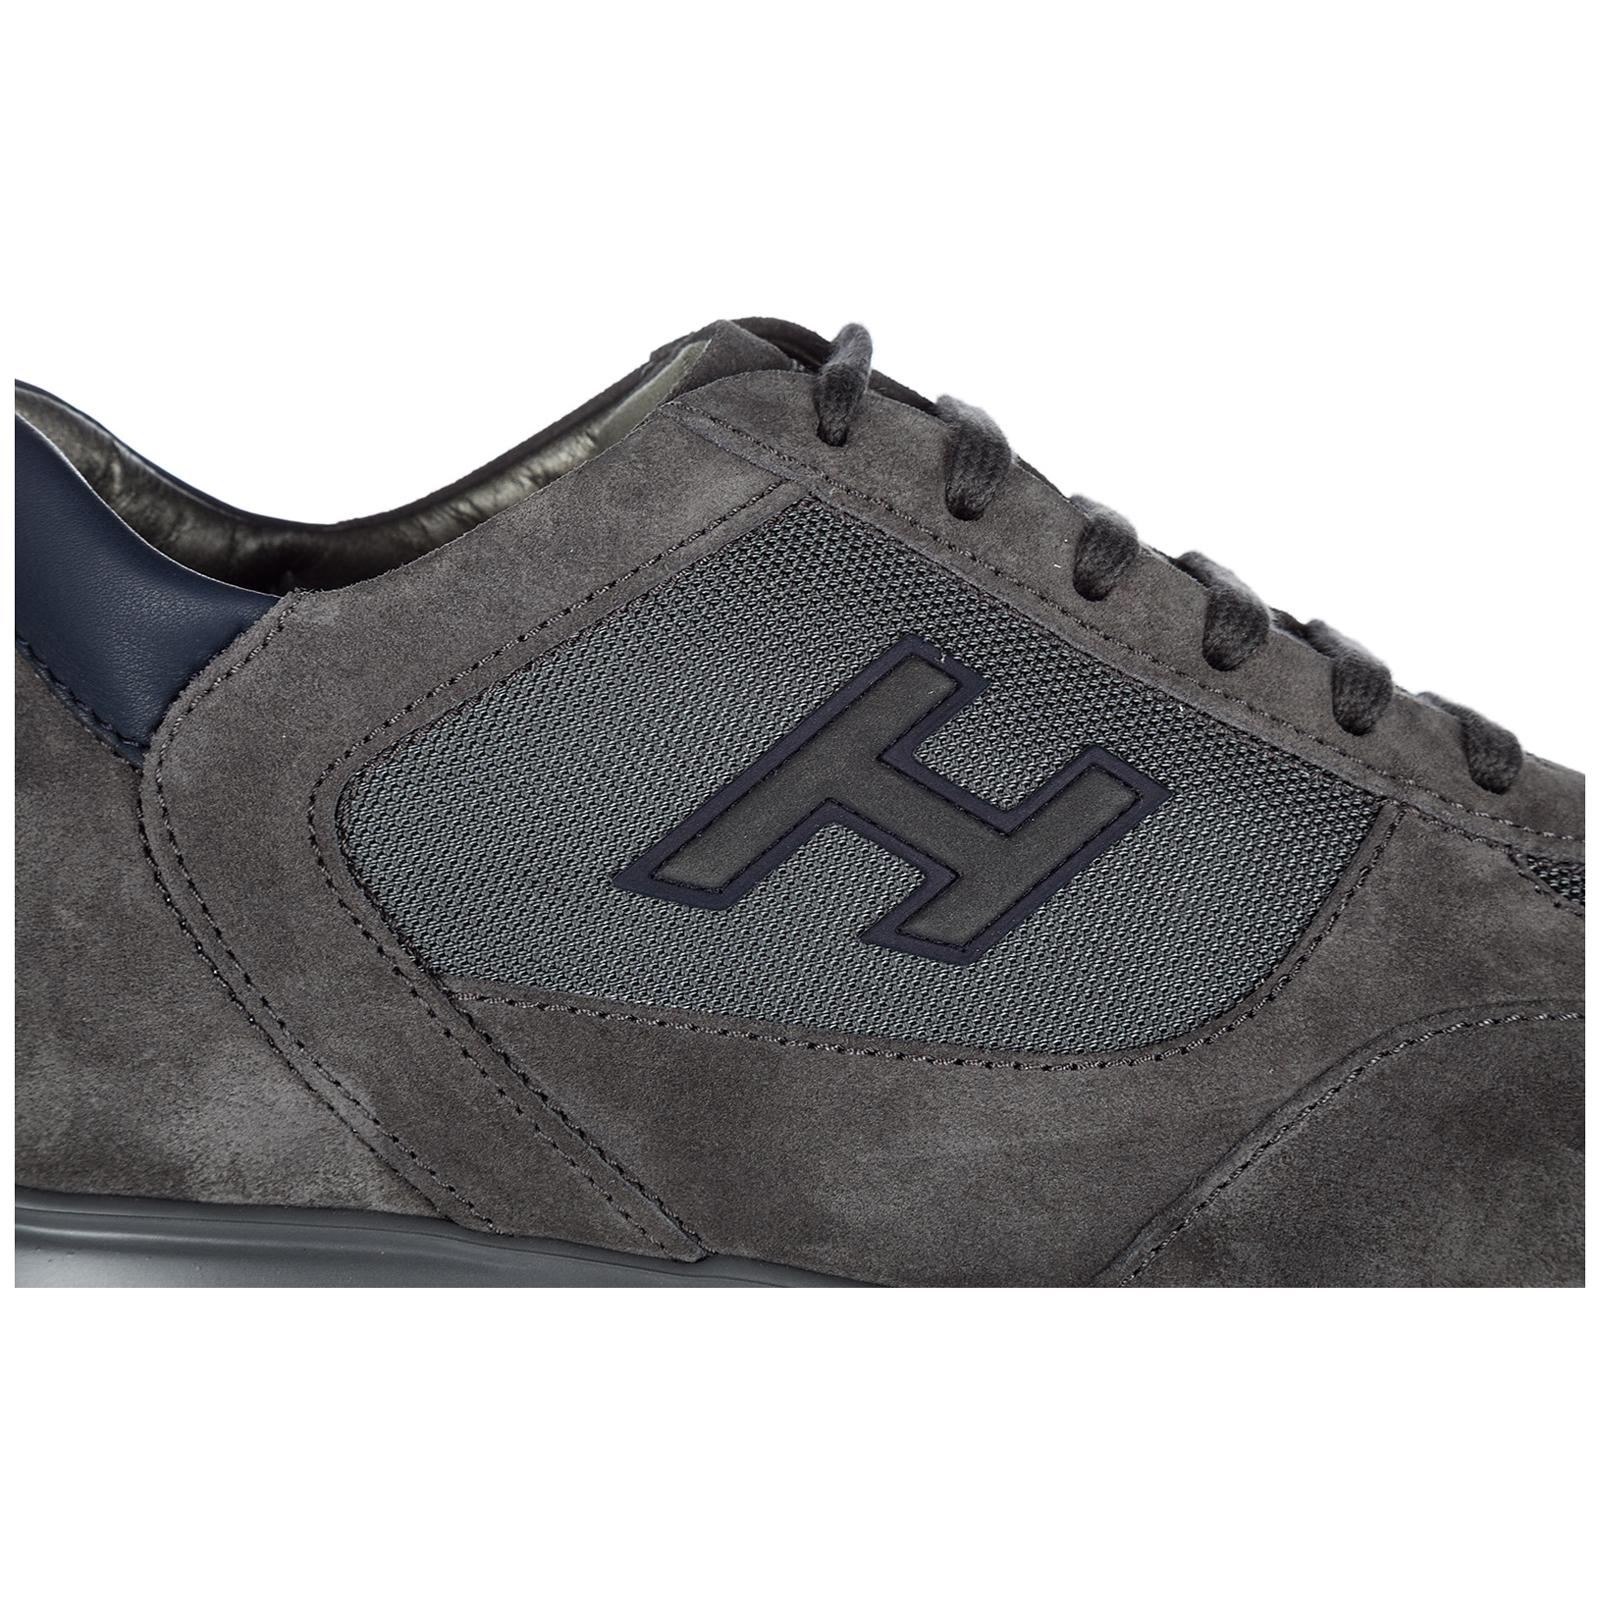 5daf771a4b89 Hogan - Gray Shoes Suede Trainers Sneakers New Interactive H Flock for Men  - Lyst. View fullscreen